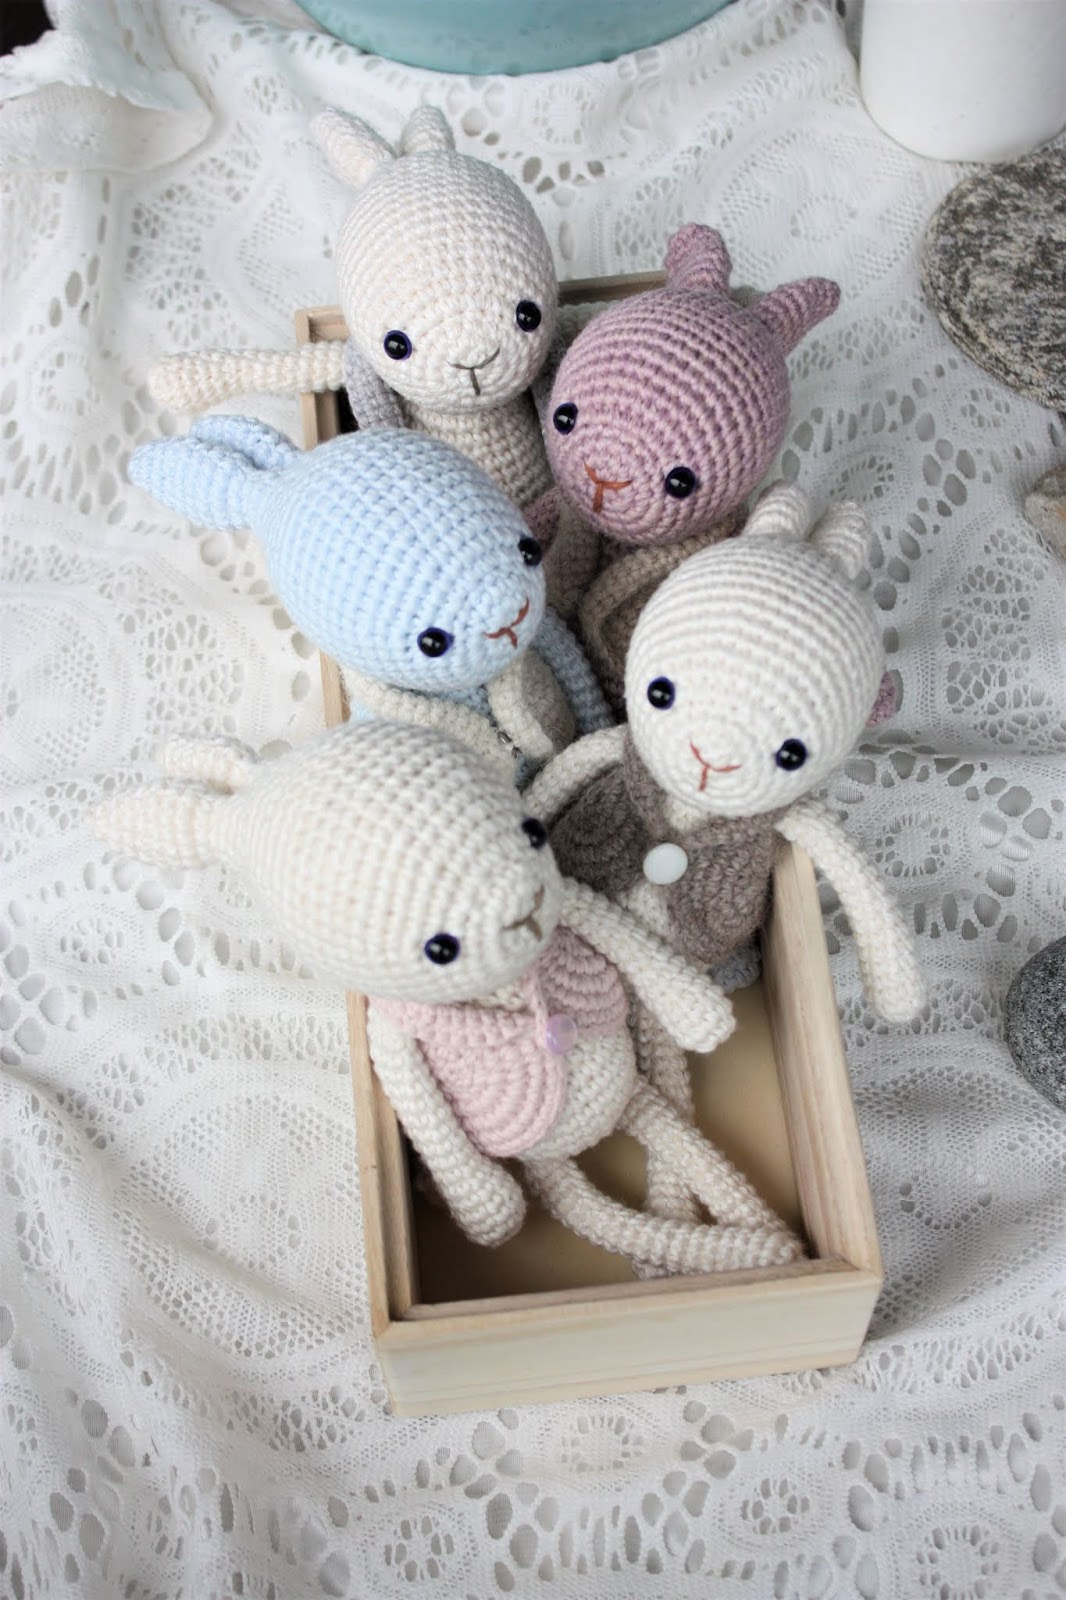 Amigurumi Collection - All About Ami | 1600x1066